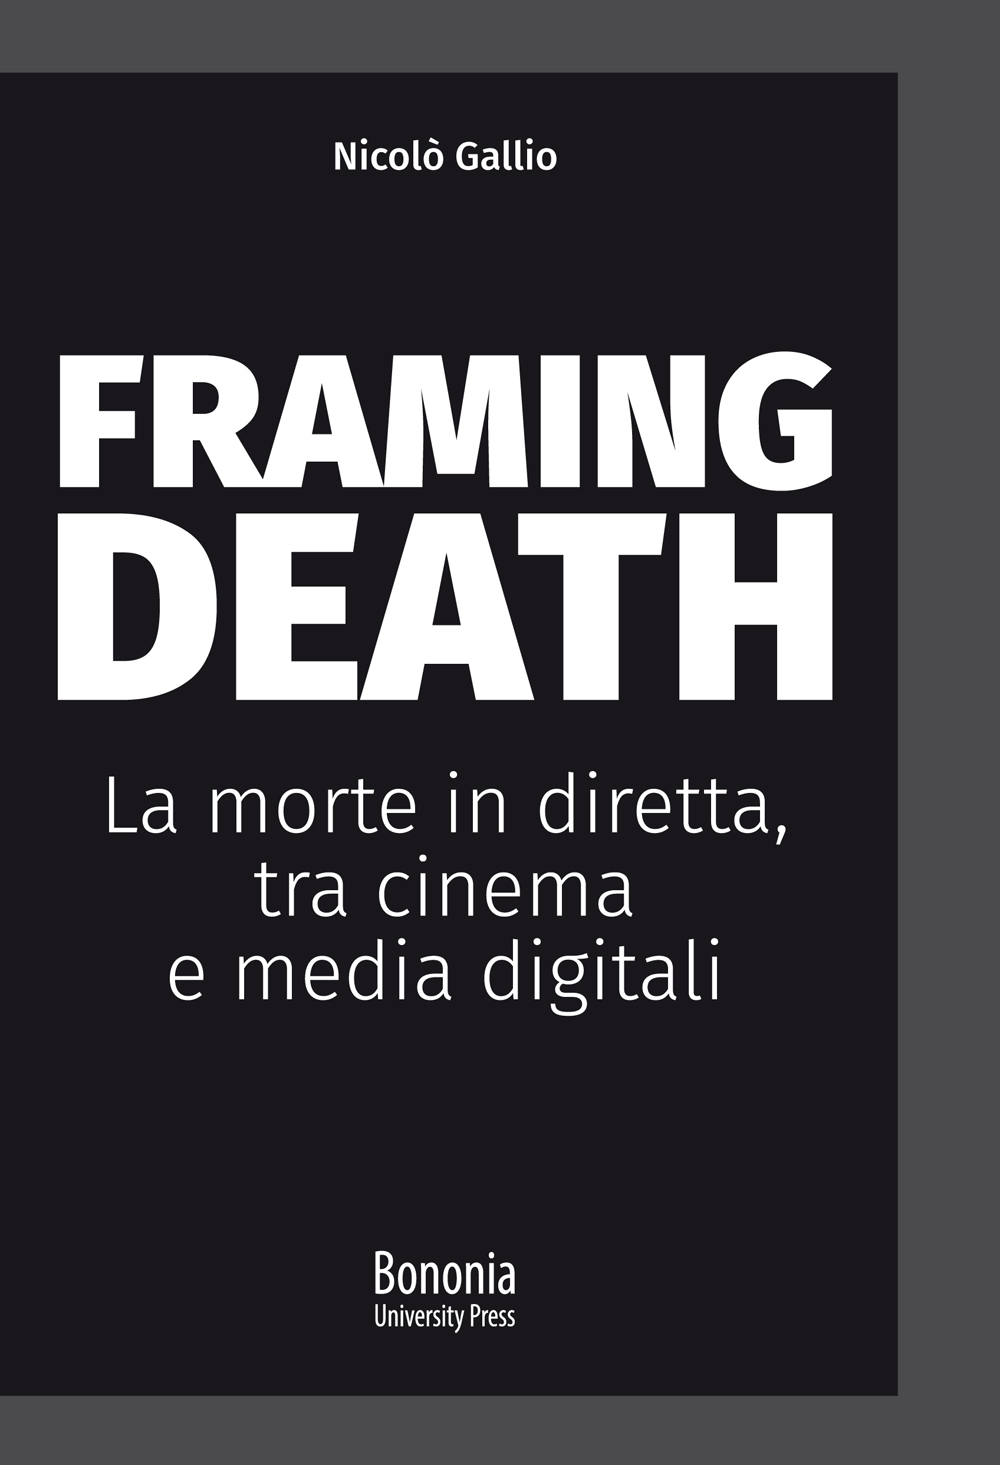 Framing Death - Bononia University Press